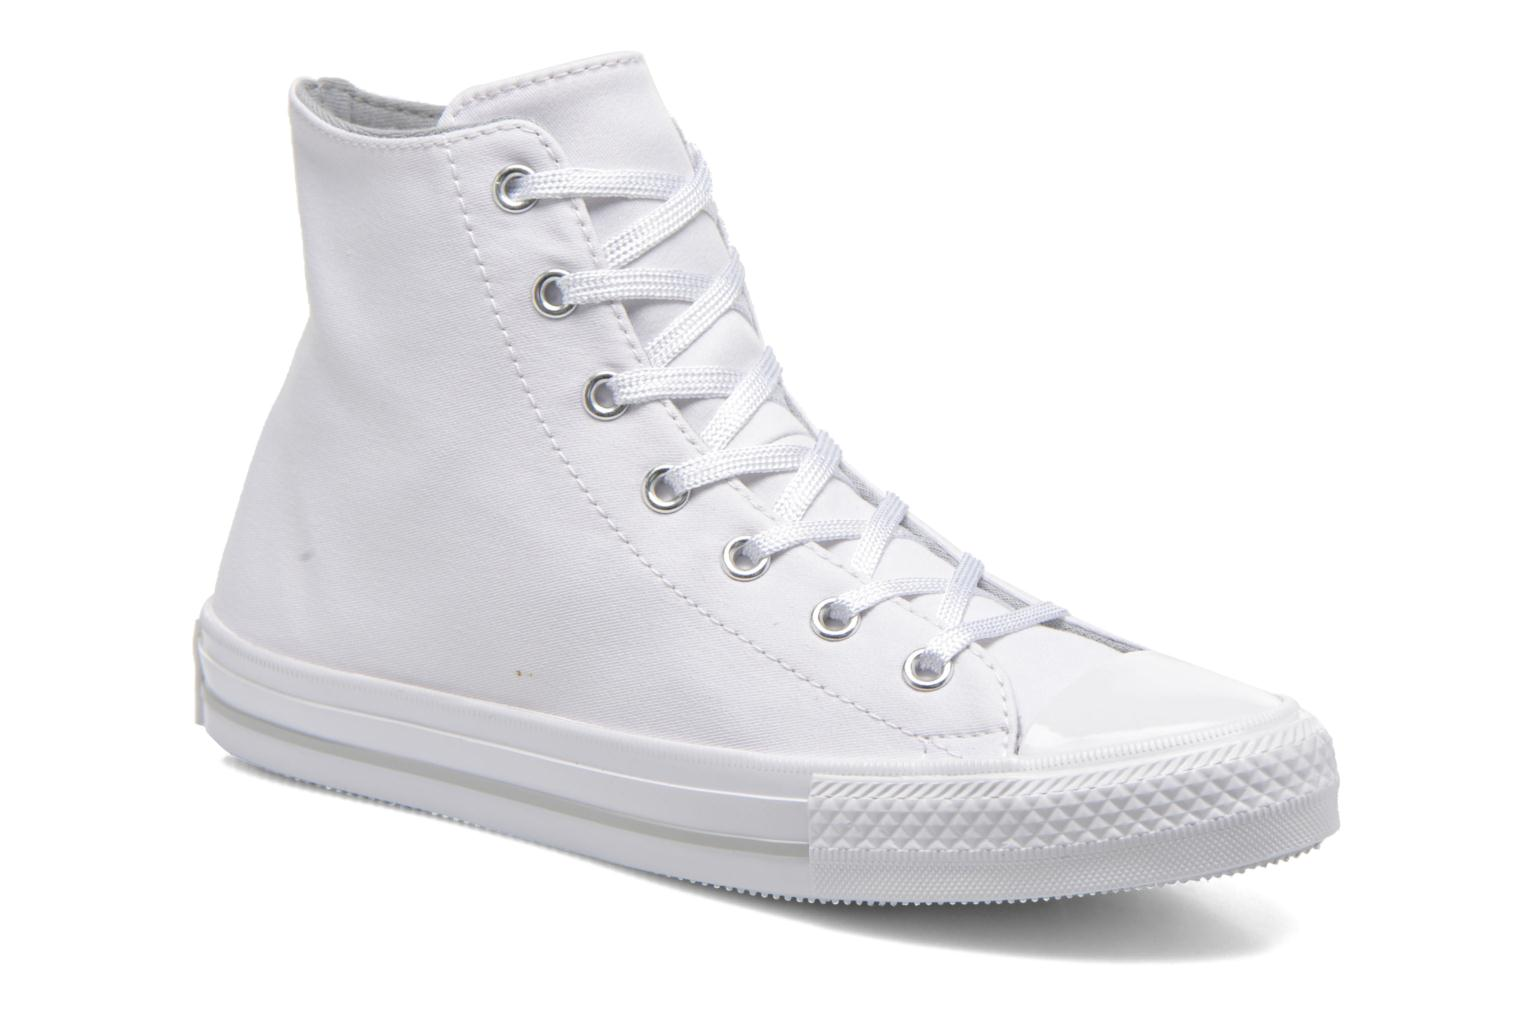 Donna Converse Chuck Taylor All Star Gemma Twill Hi Sneakers Bianco